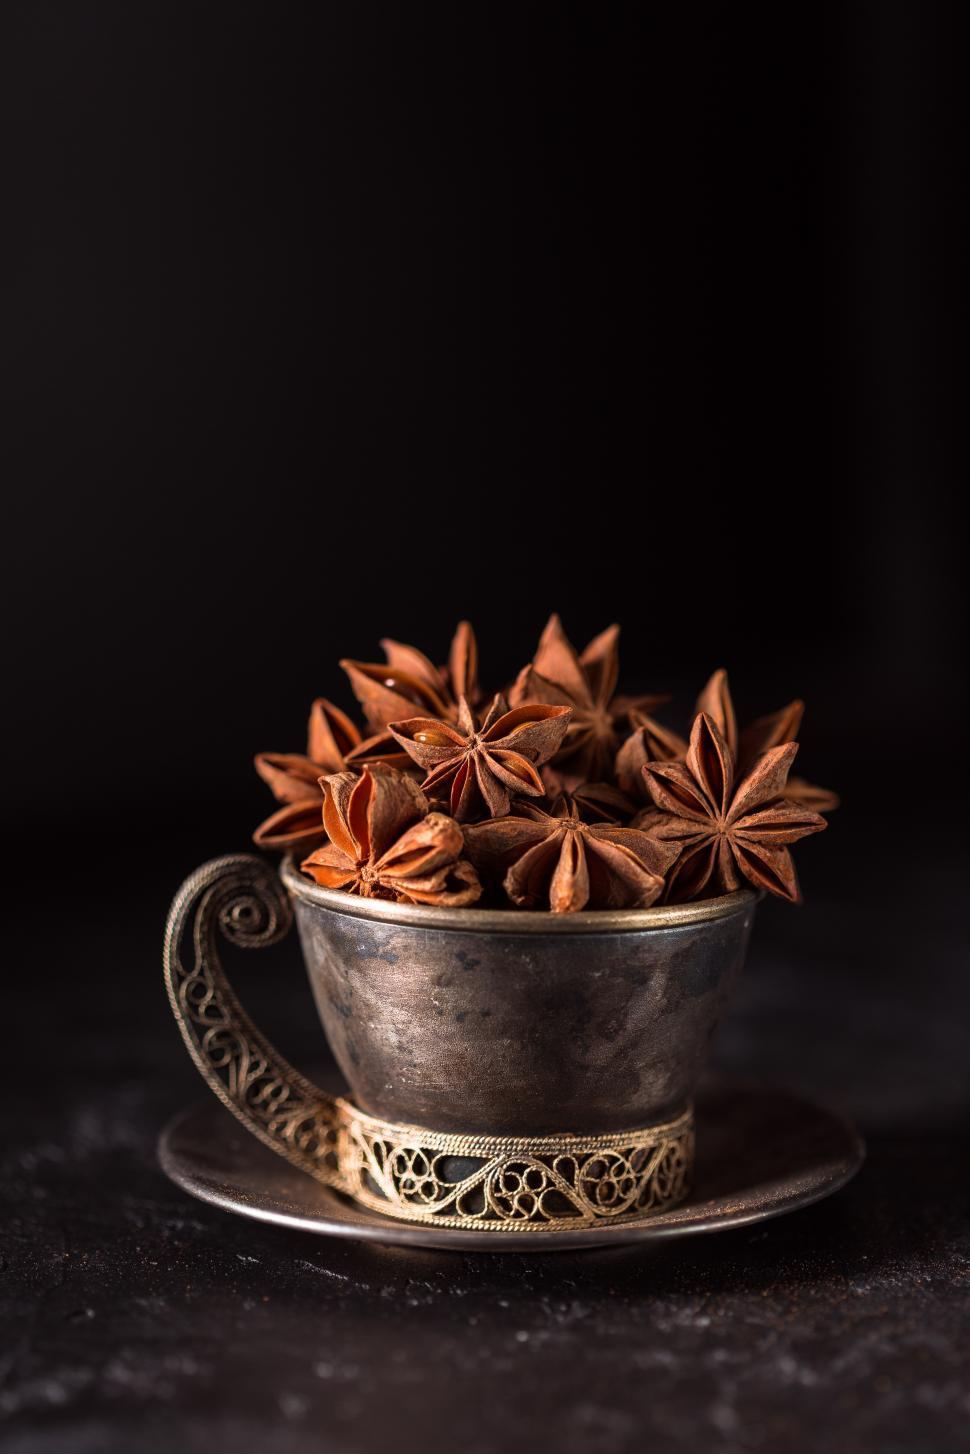 Download Free Stock HD Photo of Metal cup full of Star Anise Online